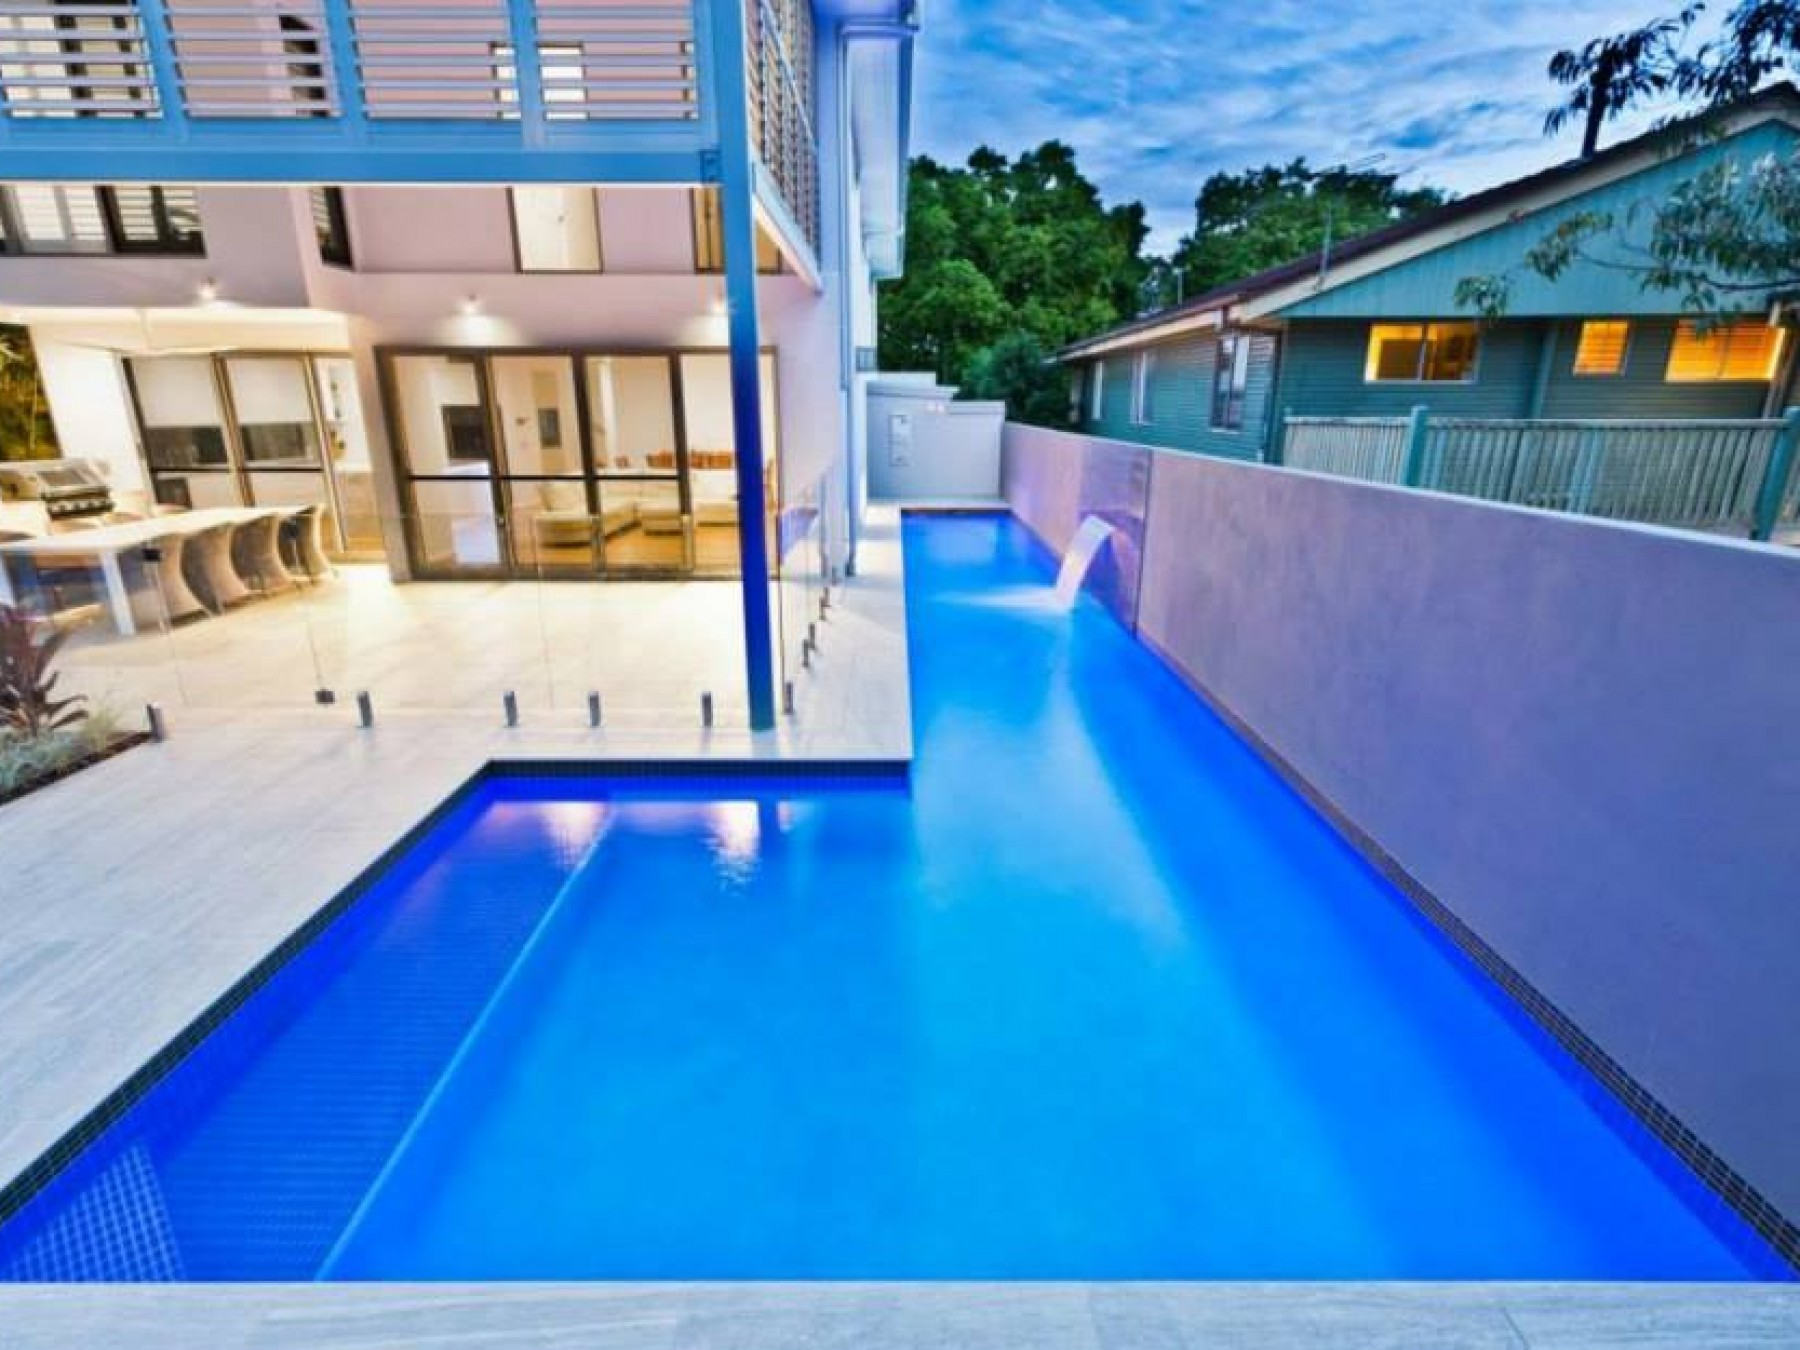 Selling or Leasing a pool in Silkstone